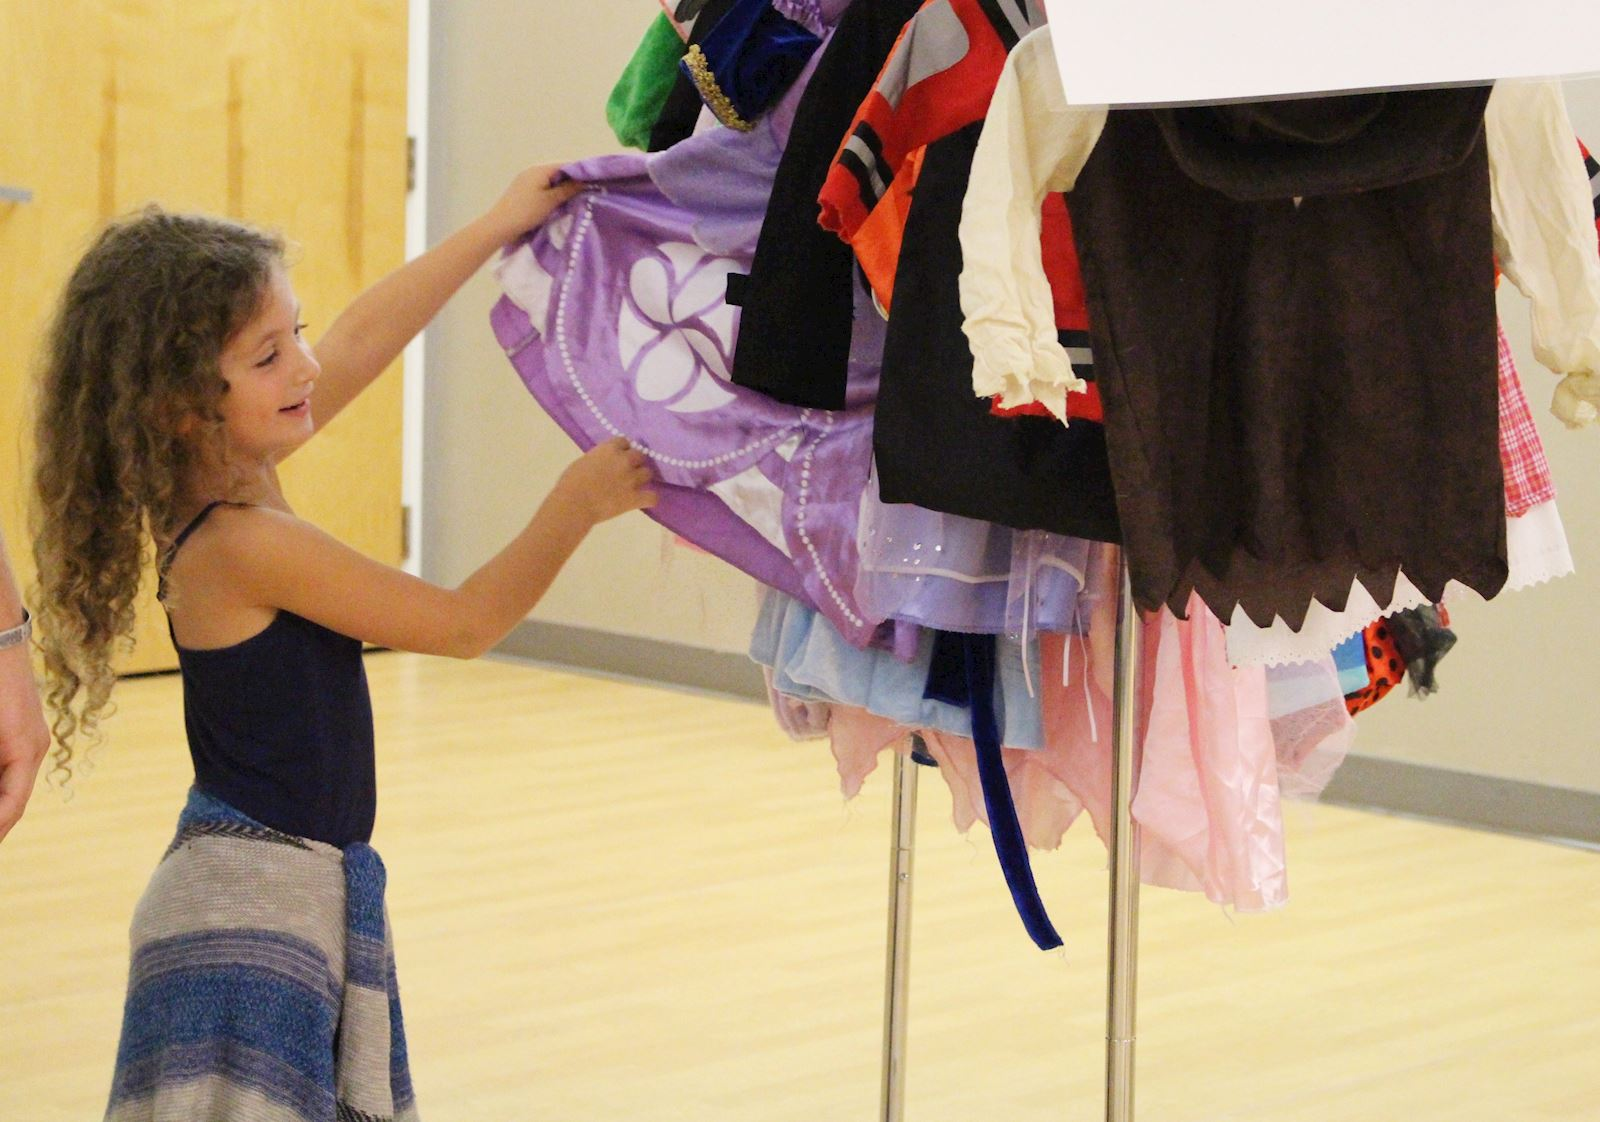 62f7e29a92c9 The Great Costume Swap will allow for community members to swap out their  gently used Halloween Costumes from years past and ...